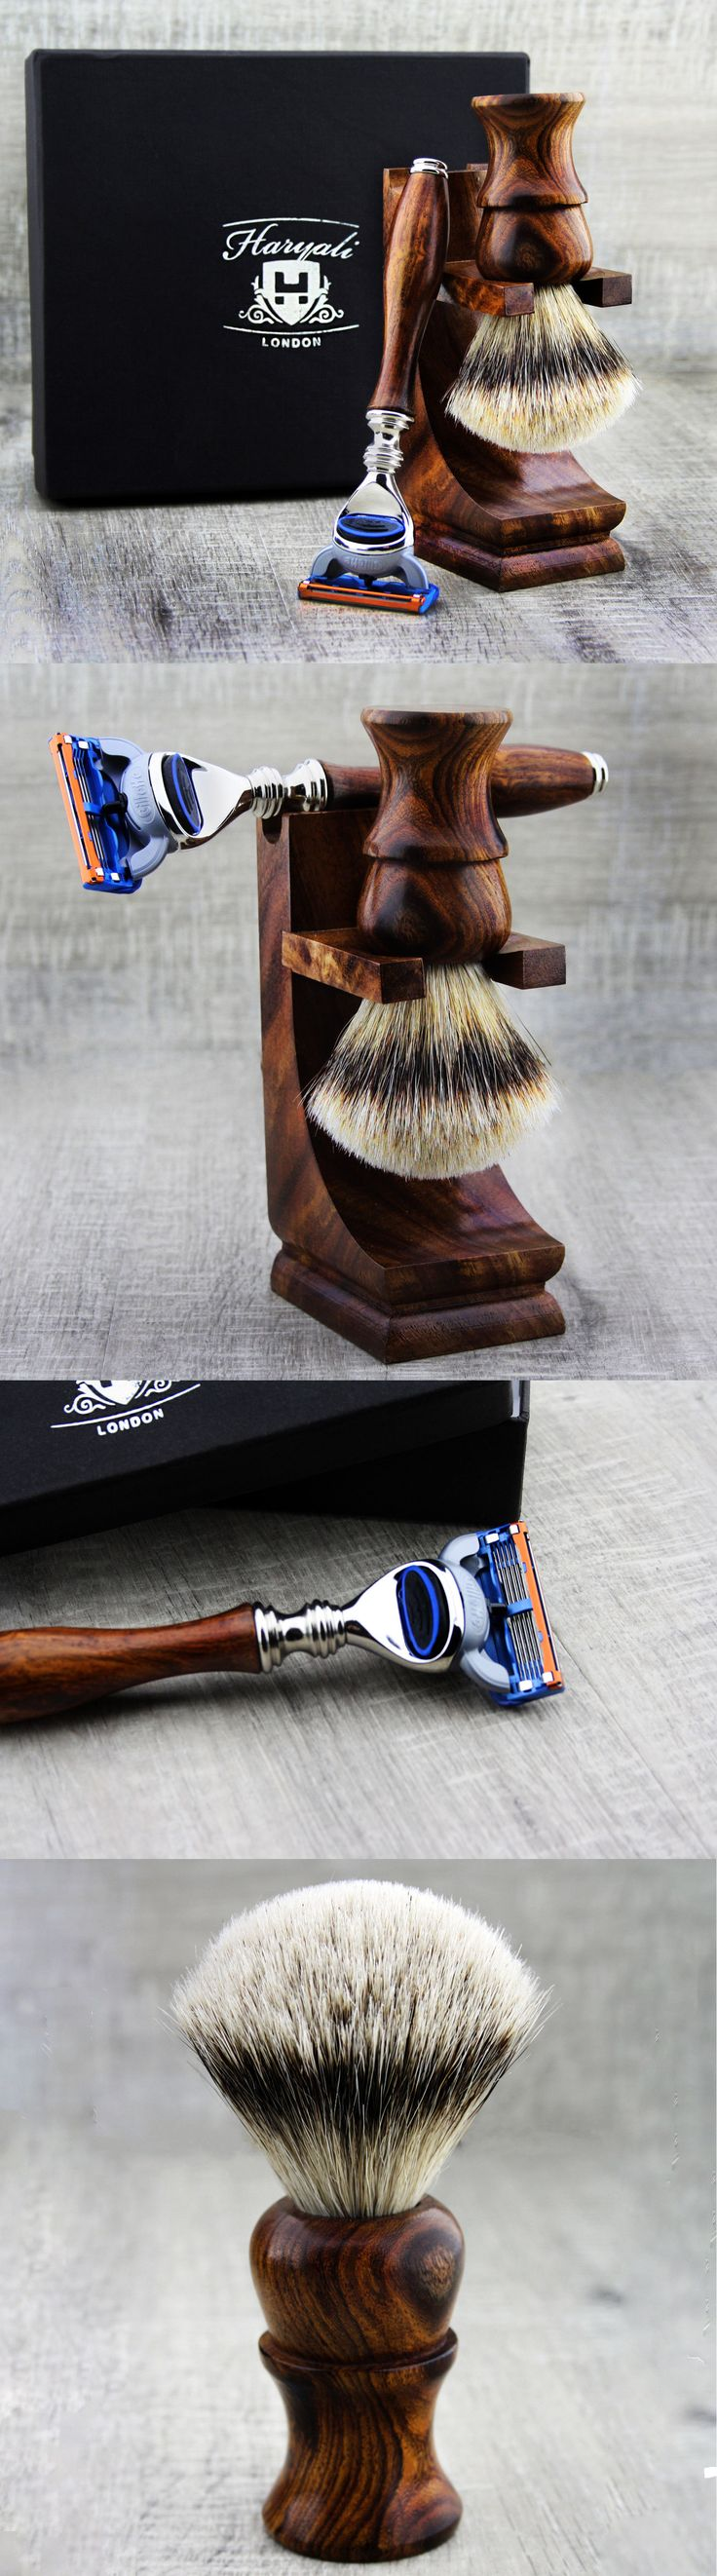 Shaving and Grooming Kits and Sets: Classic Shaving Gift Set Wooden Shaving Badger Sliver Tip Hair And Fusion Razor BUY IT NOW ONLY: $69.99